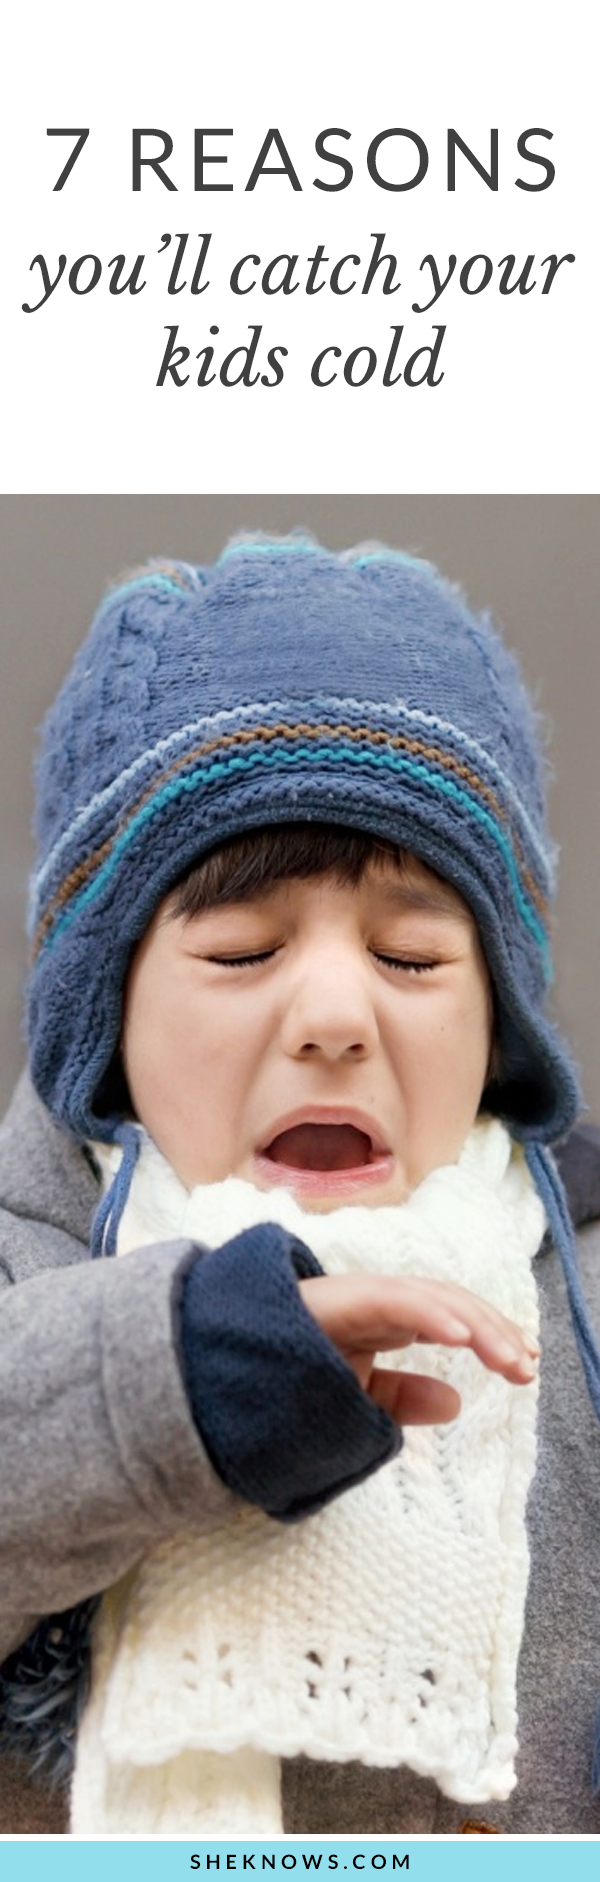 Pin it!: 7 Reasons You'll Totally Catch Your Kid's Cold